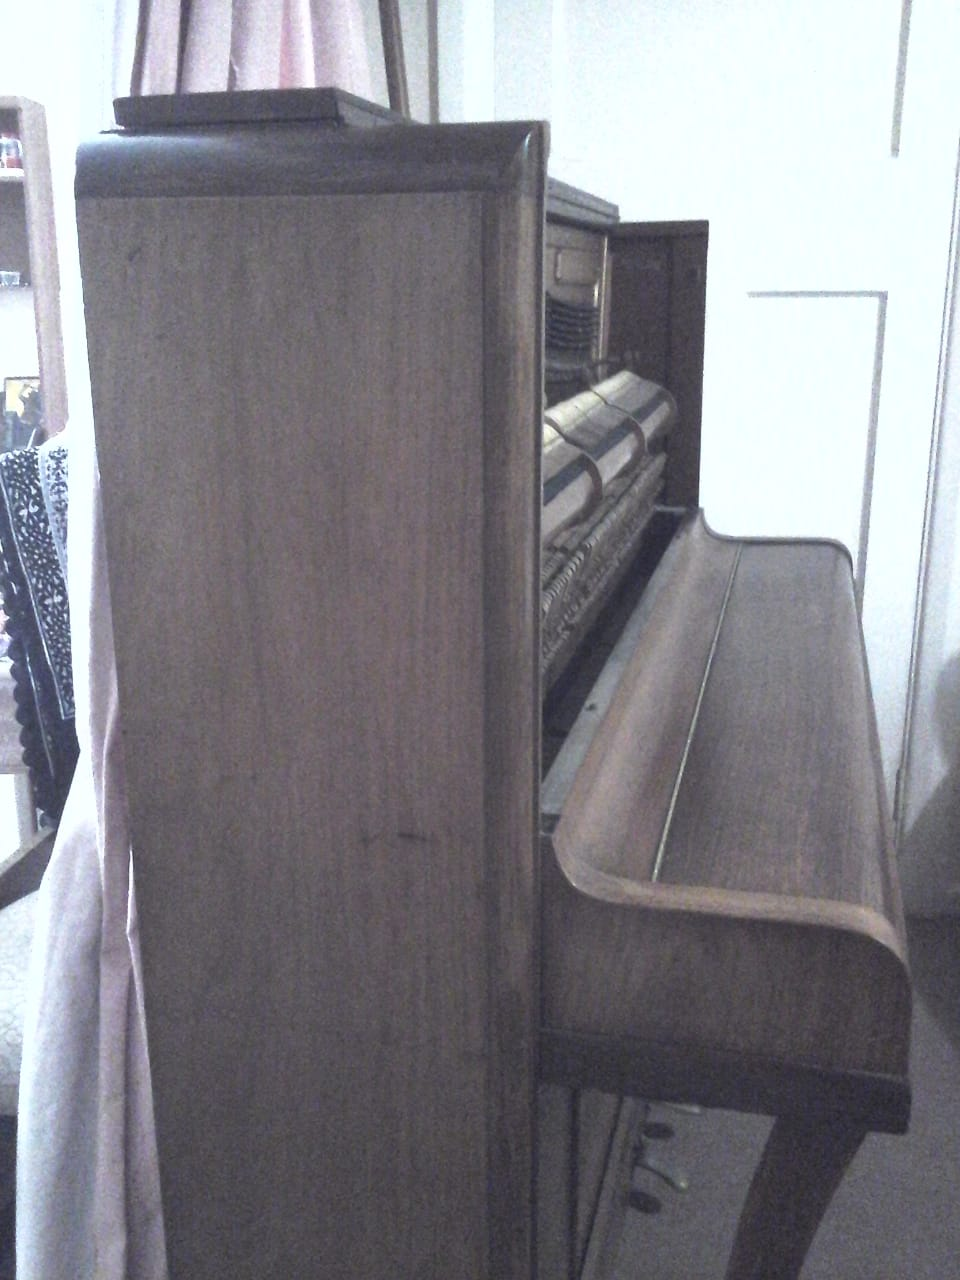 Second hand upright piano in good condition. Needs tuning